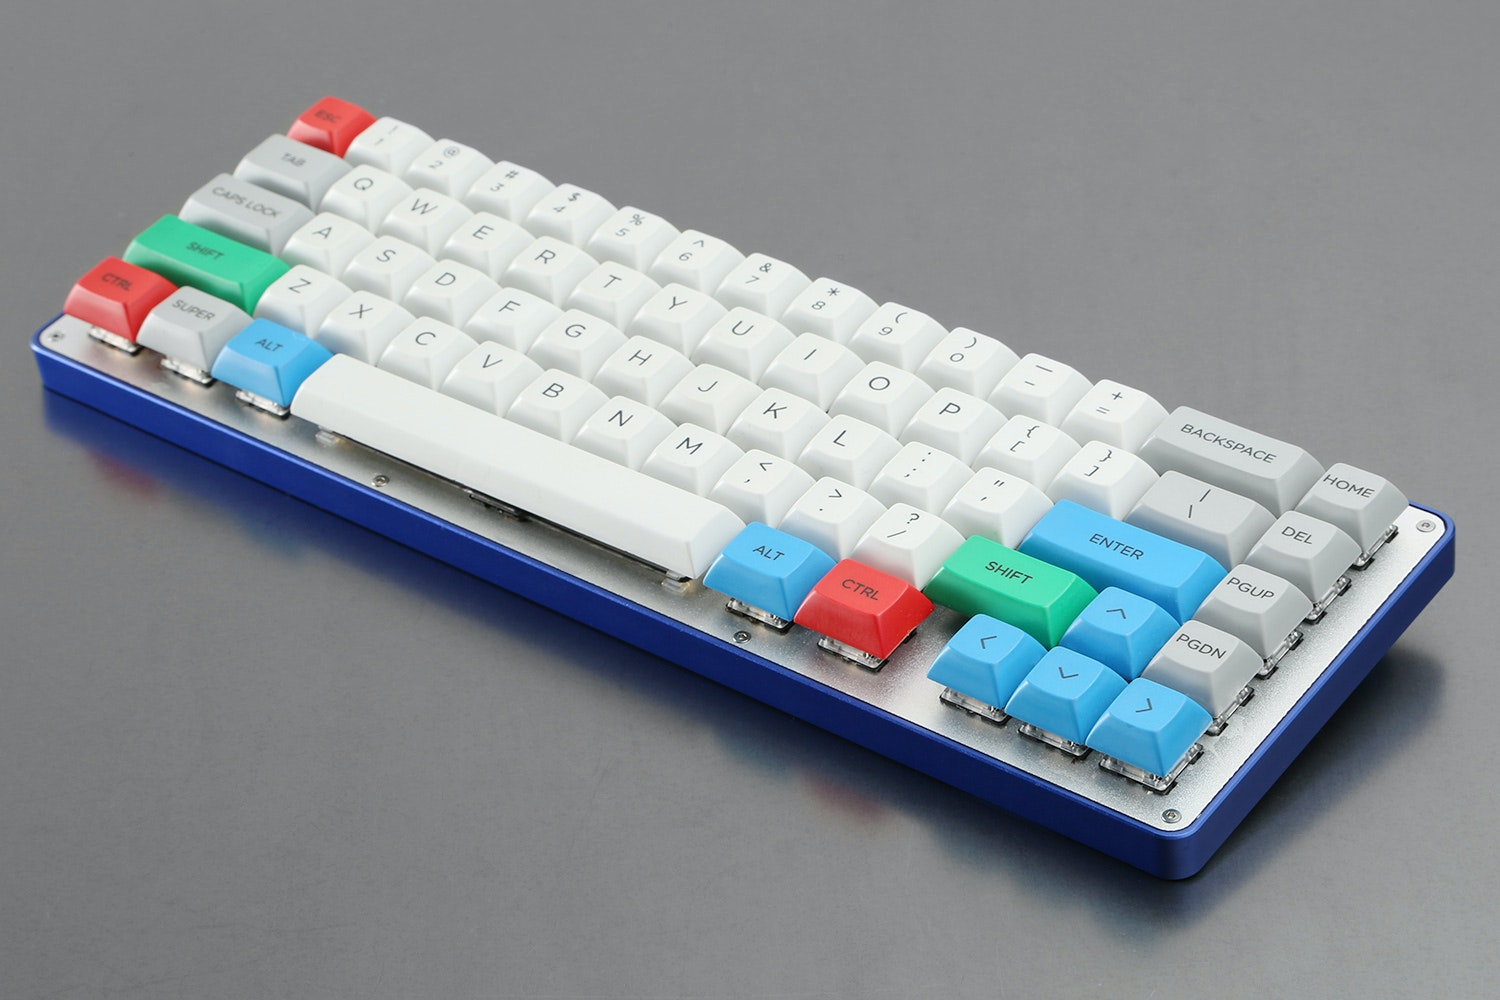 Anodized CNC Aluminum Case for WhiteFox